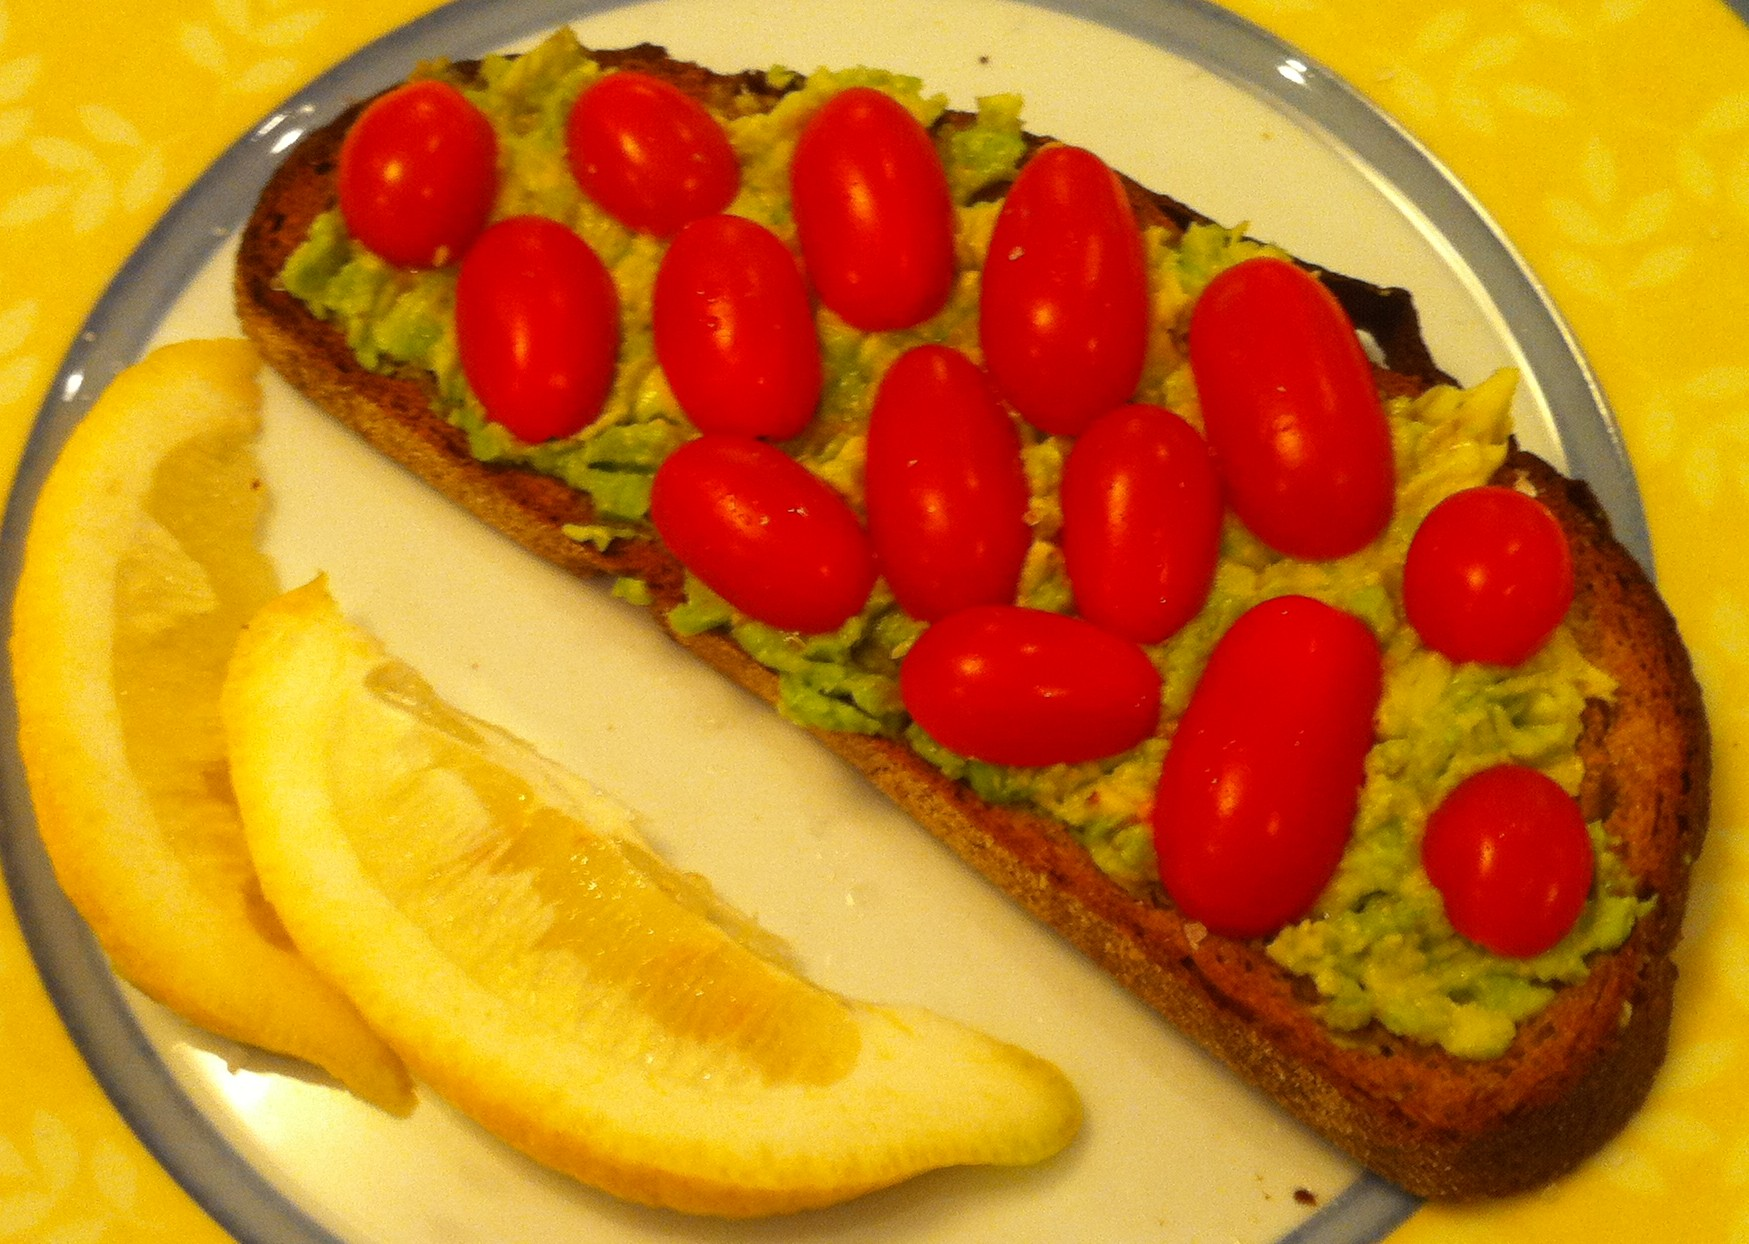 This avocado toast is delicious and totally healthy and vegan.